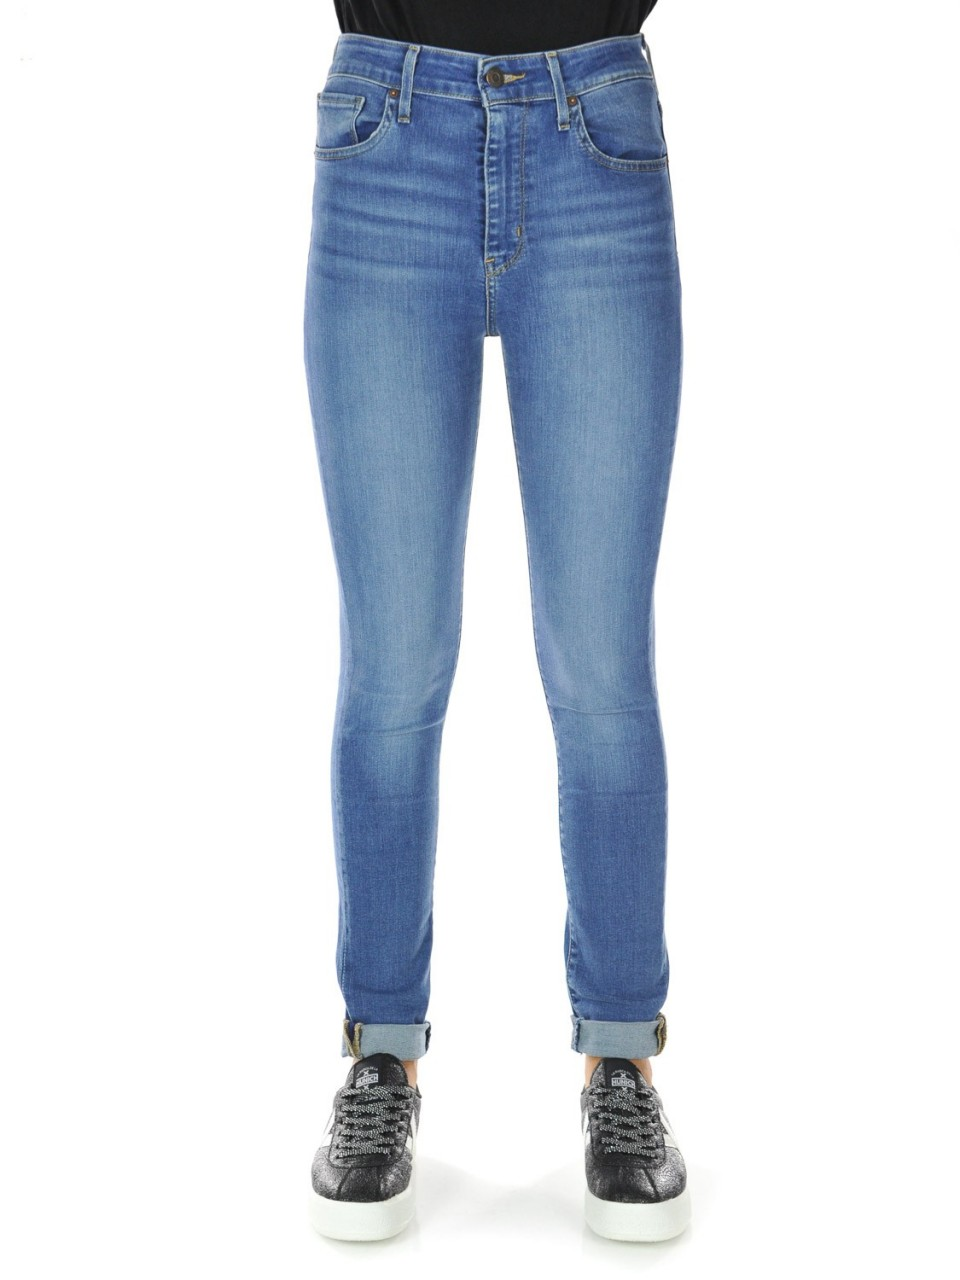 Levi's Donna Jeans Levi's Donna 721 High Rise Skinny Dustitw L 30 8820130I